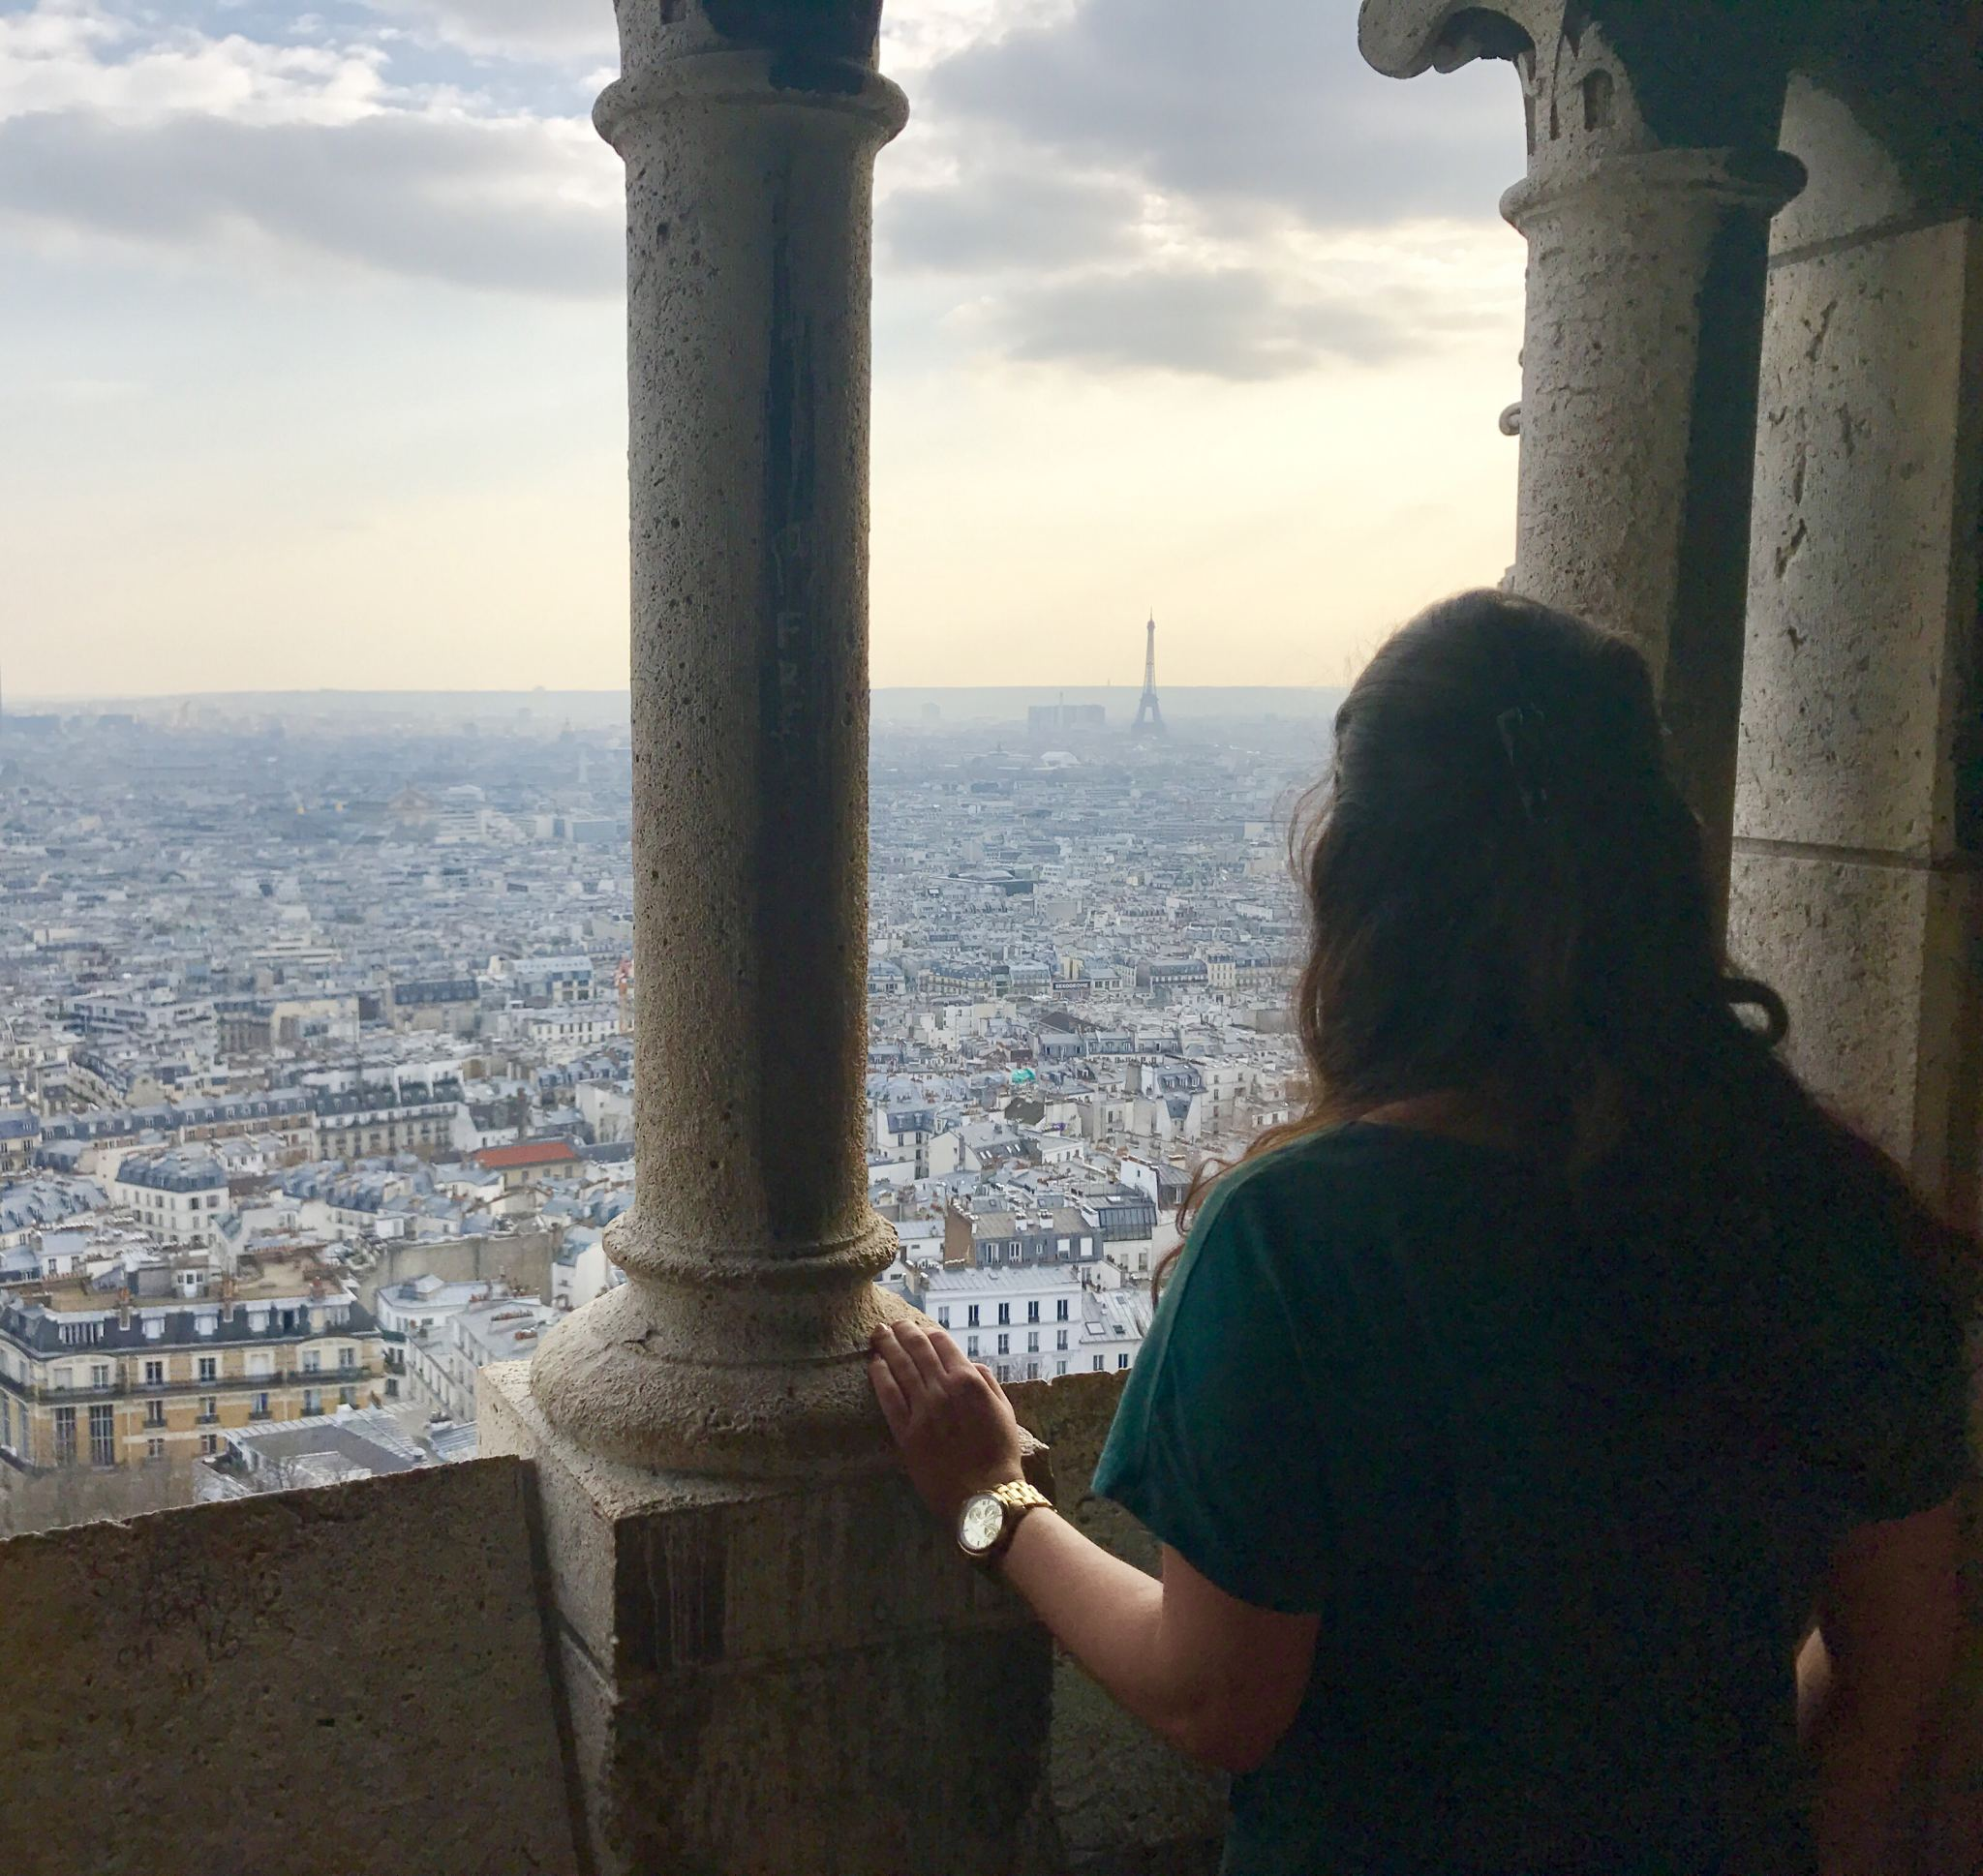 The view from the Sacré-Cœur